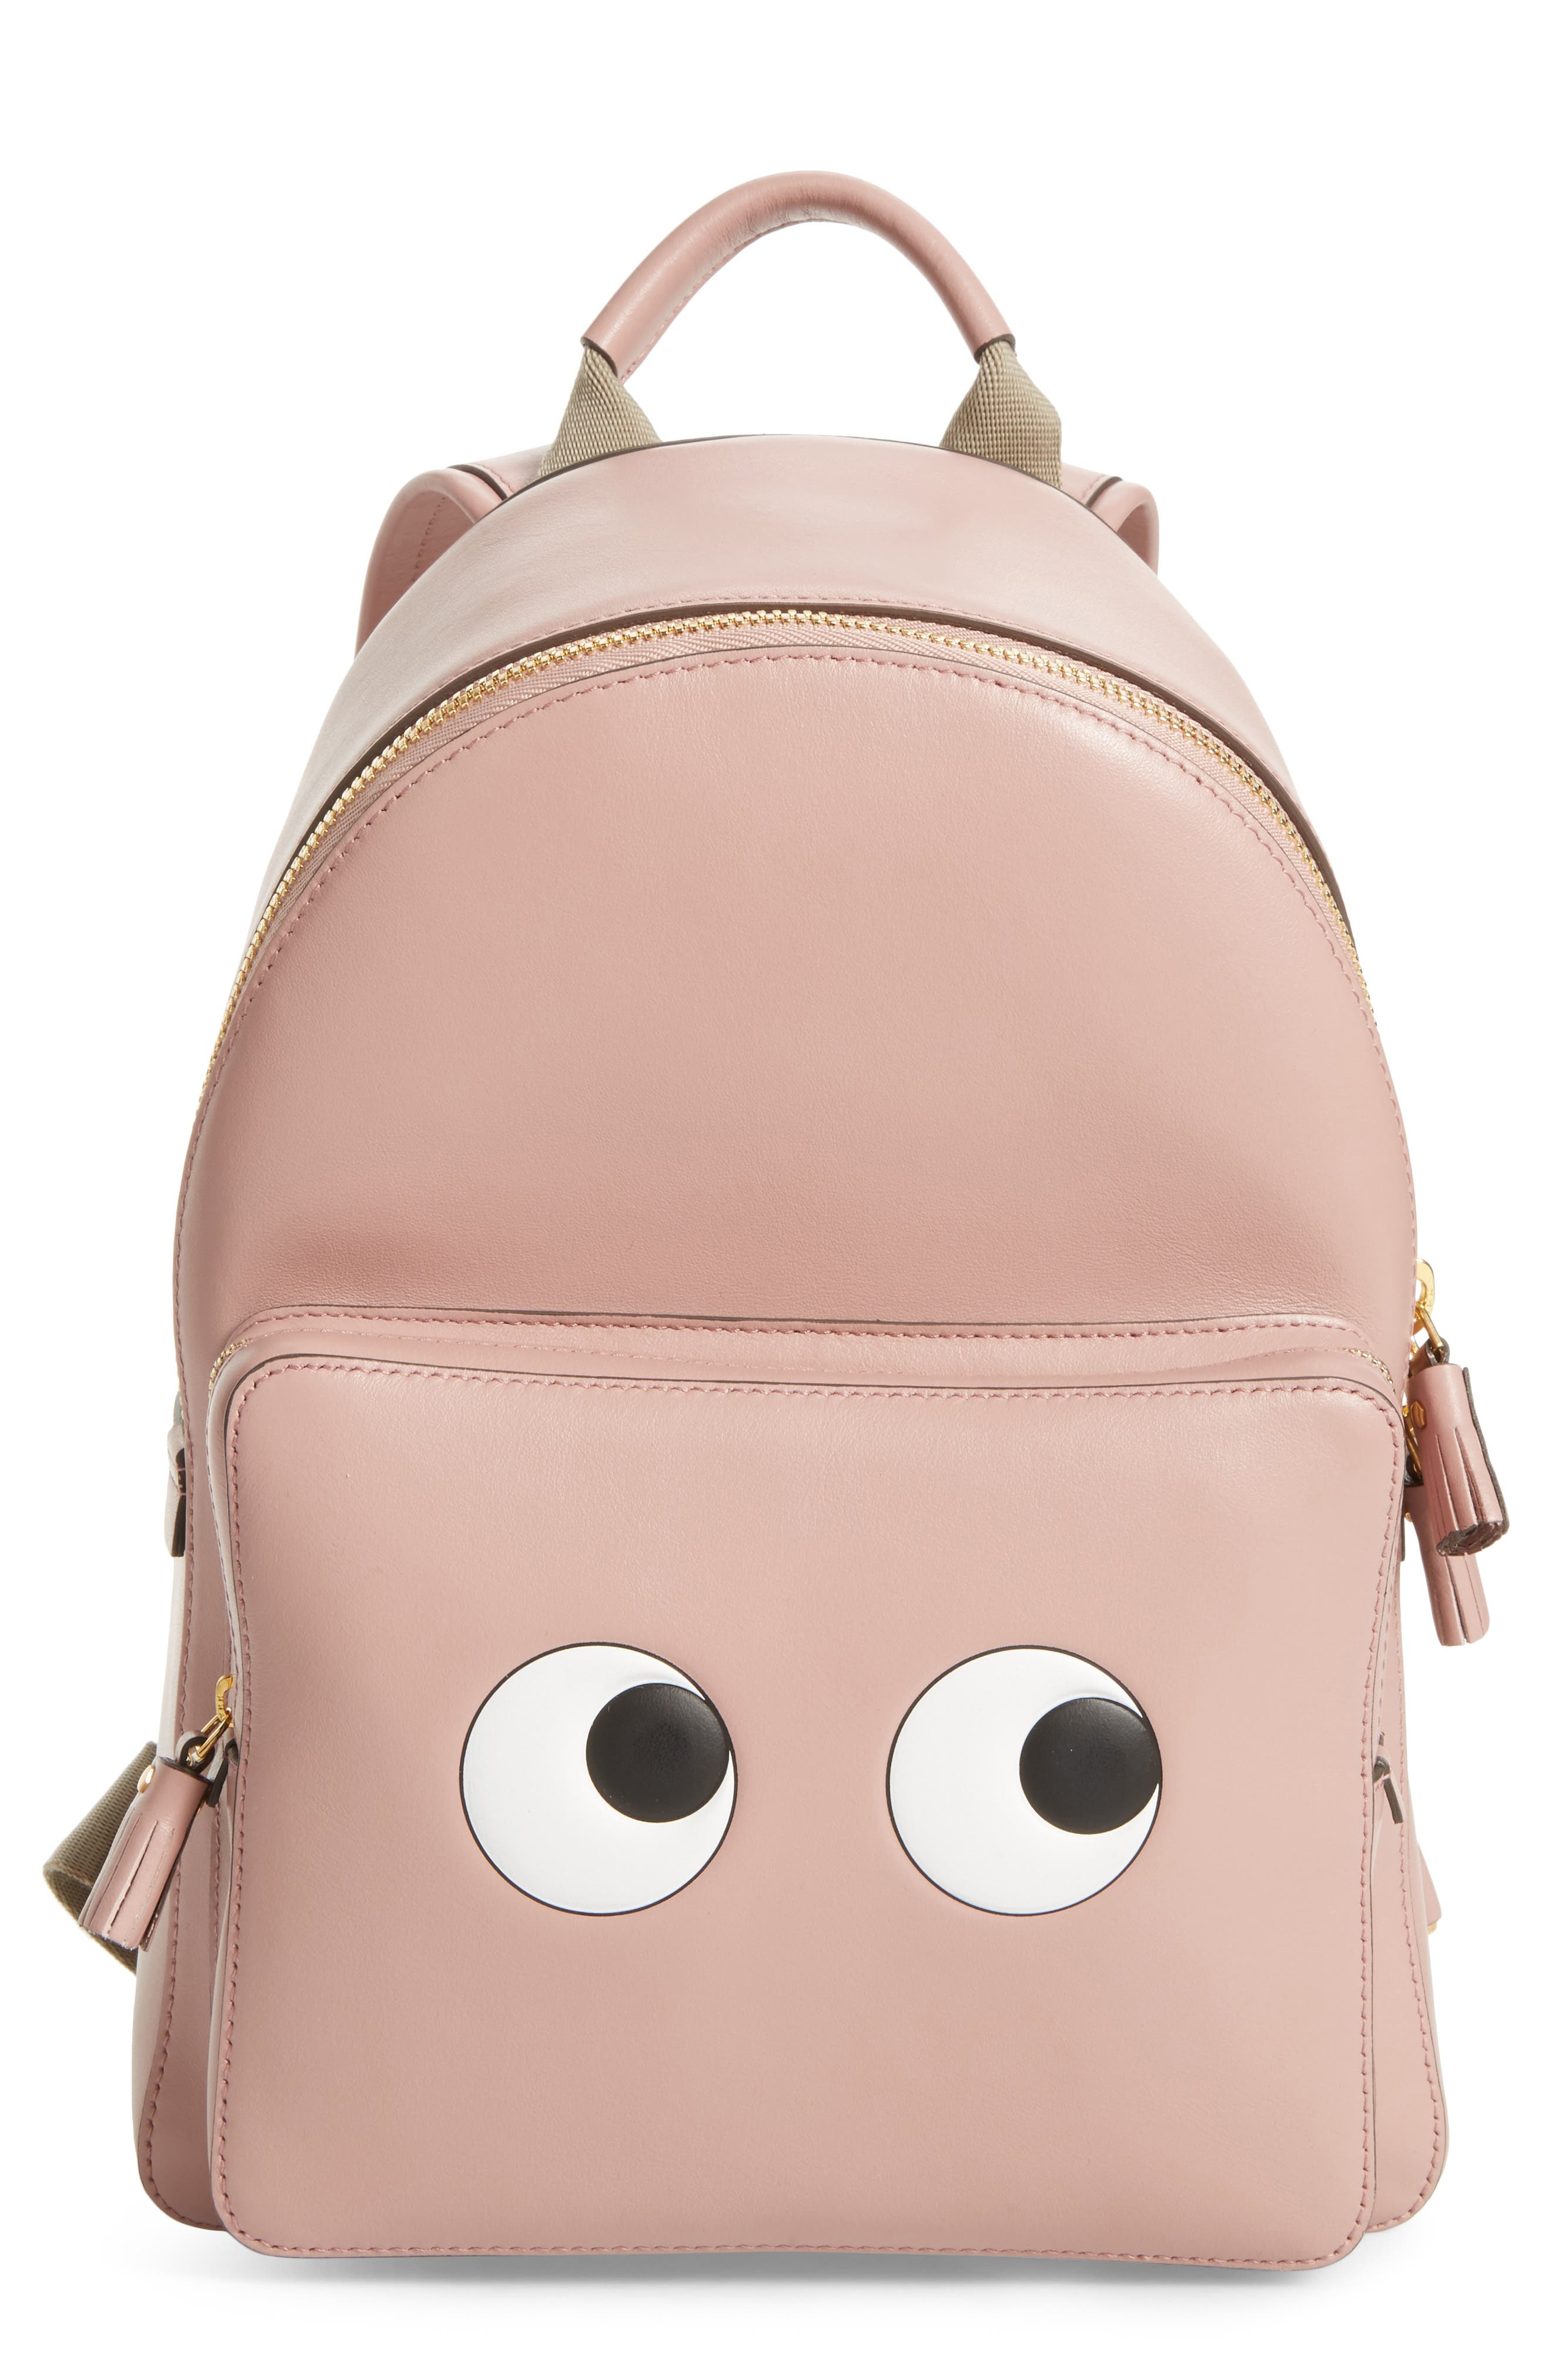 Main Image - Anya Hindmarch Eyes Mini Leather Backpack